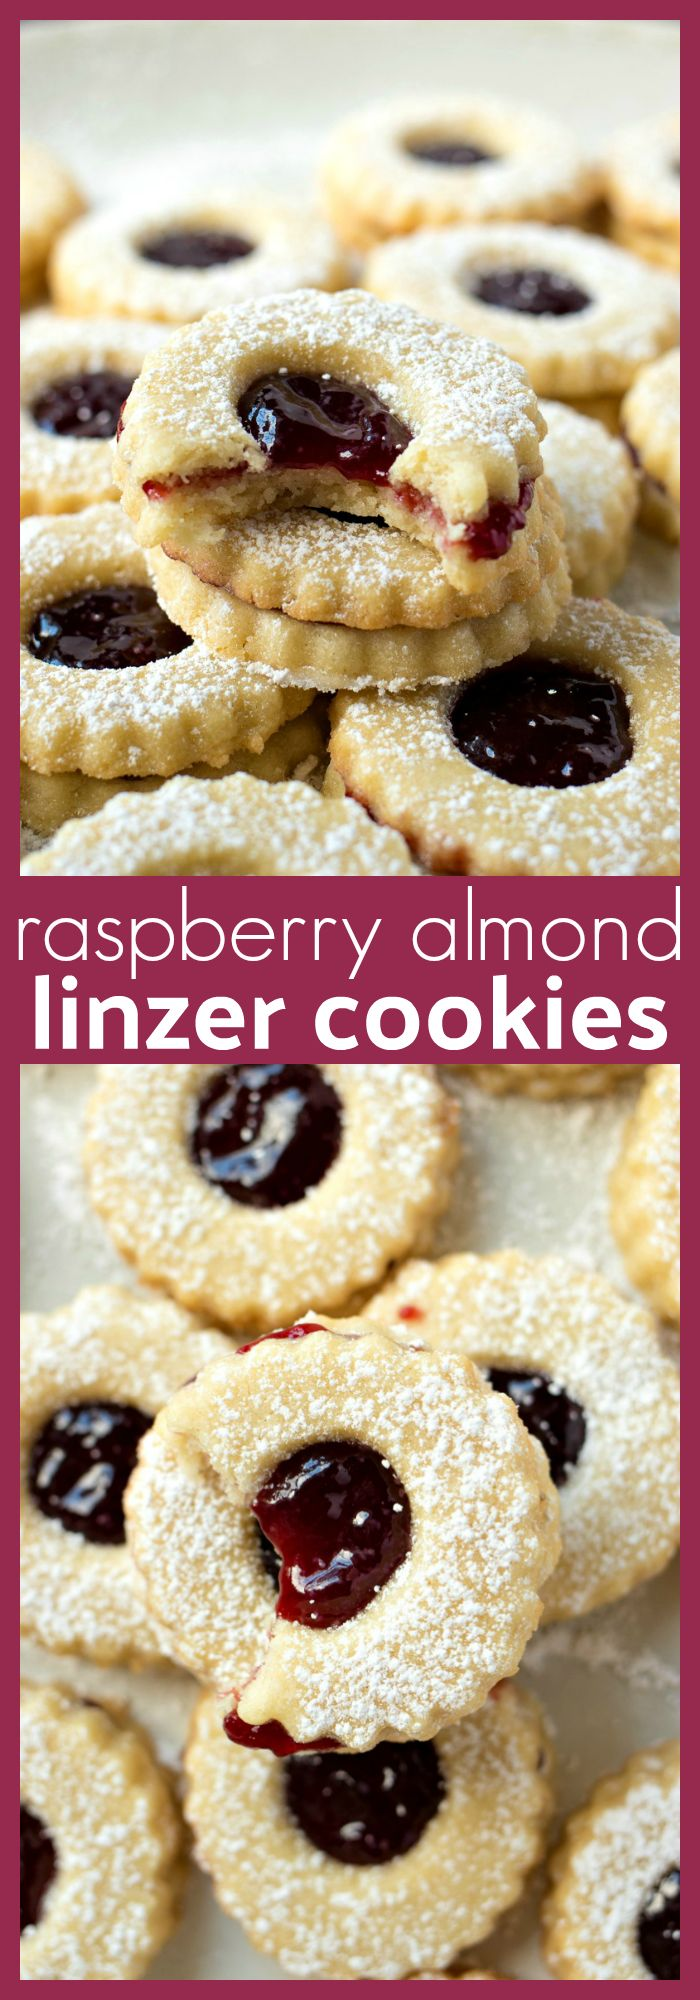 Raspberry Almond Linzer Cookies – Perfectly tart raspberry jam sandwiched between two buttery almond shortbread cookies #cookies #CookieRecipe #christmas #baking #holidayrecipes #valentinesday #raspberry #almond #christmascookies